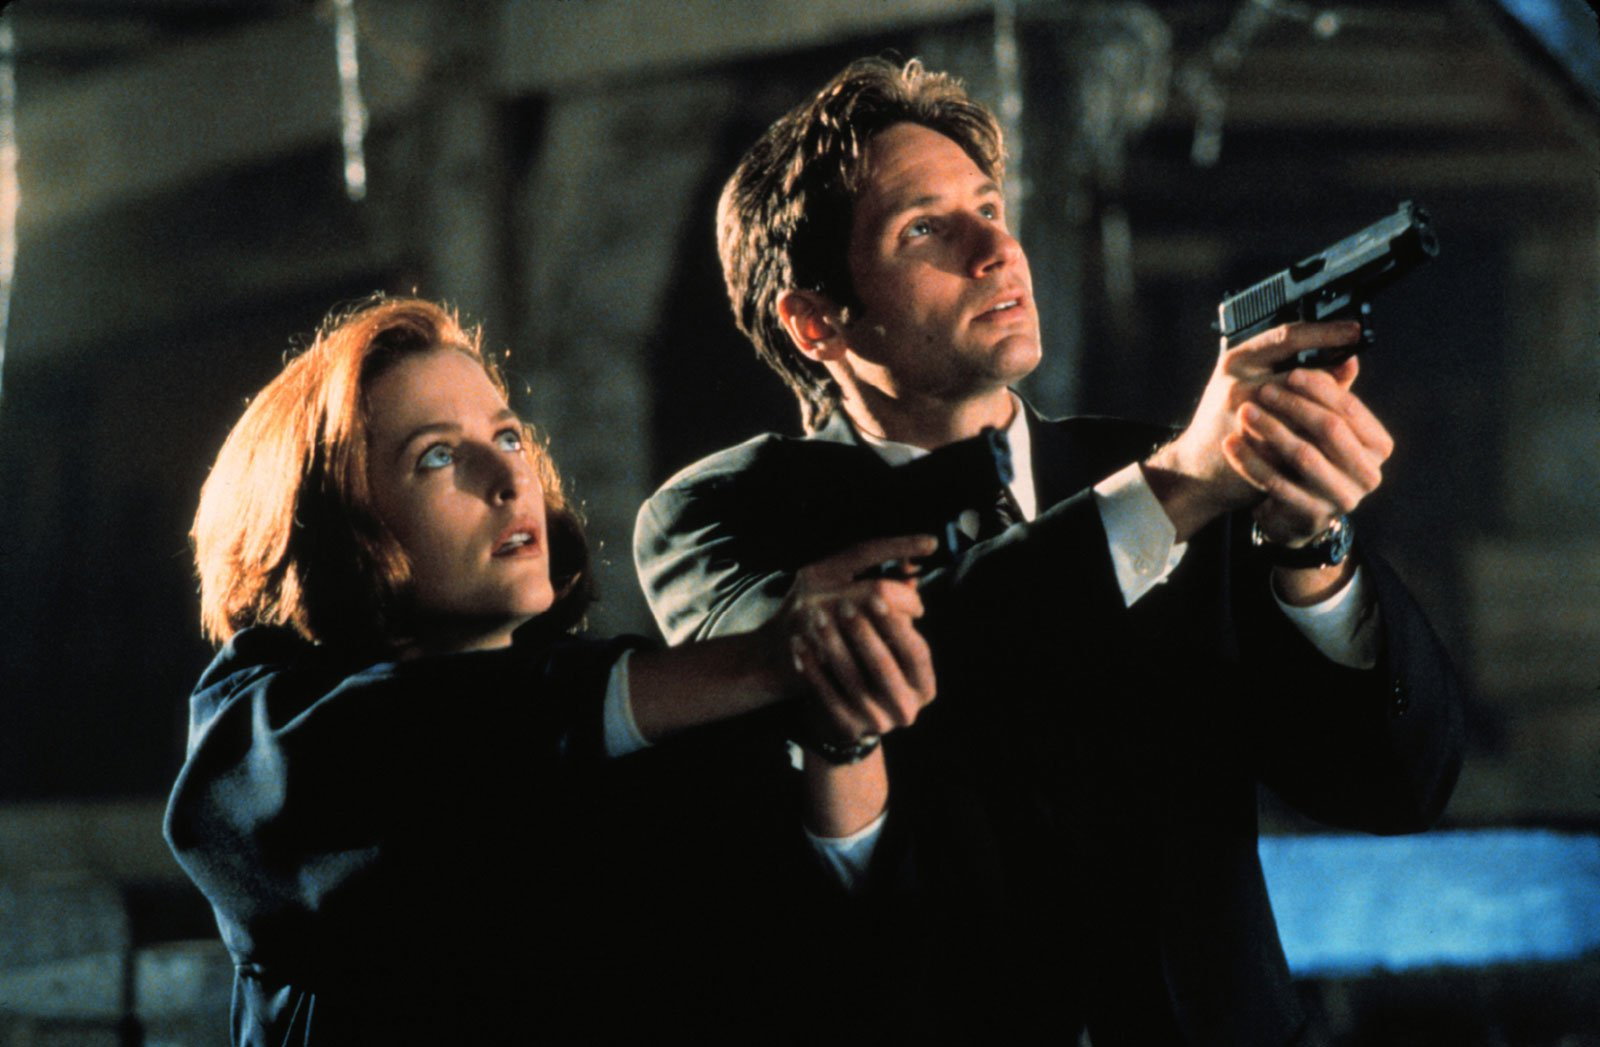 Gillian Anderson David Duchovny The X Files The Truth Is In These Amazing Facts You Never Knew About The X-Files!